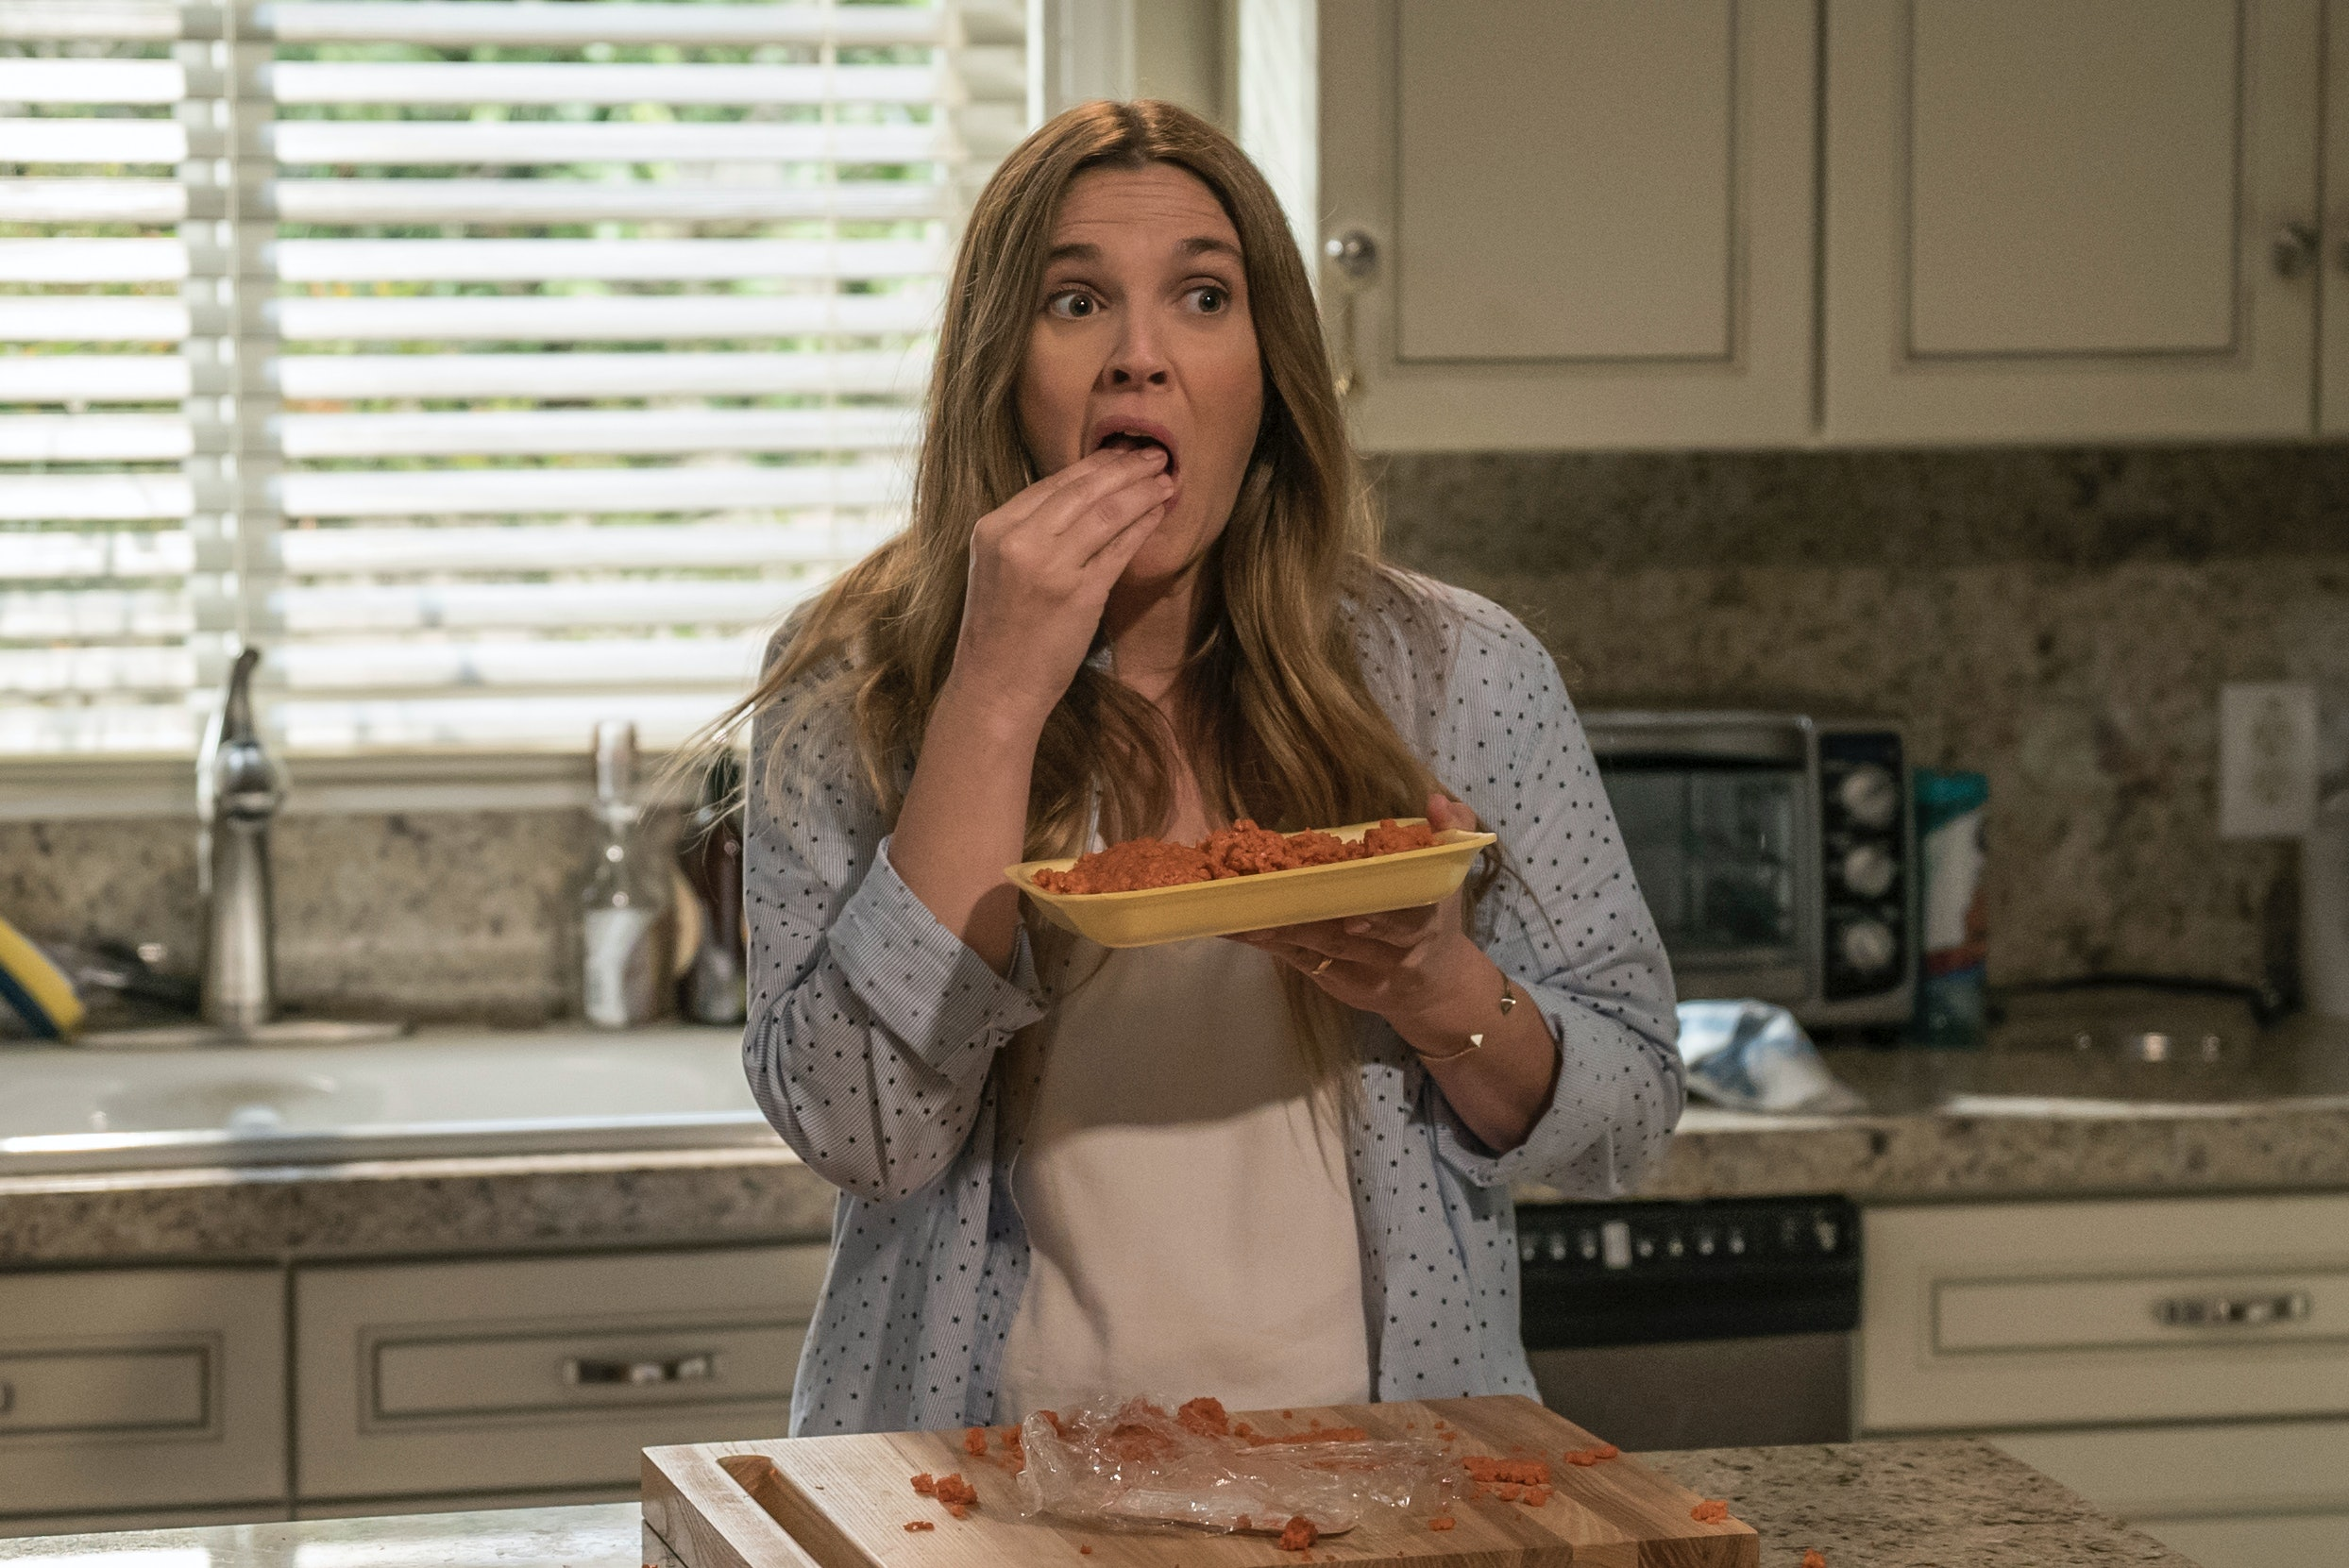 'Santa Clarita Diet' Trailer: Drew Barrymore Kills It In Netflix Dark Comedy